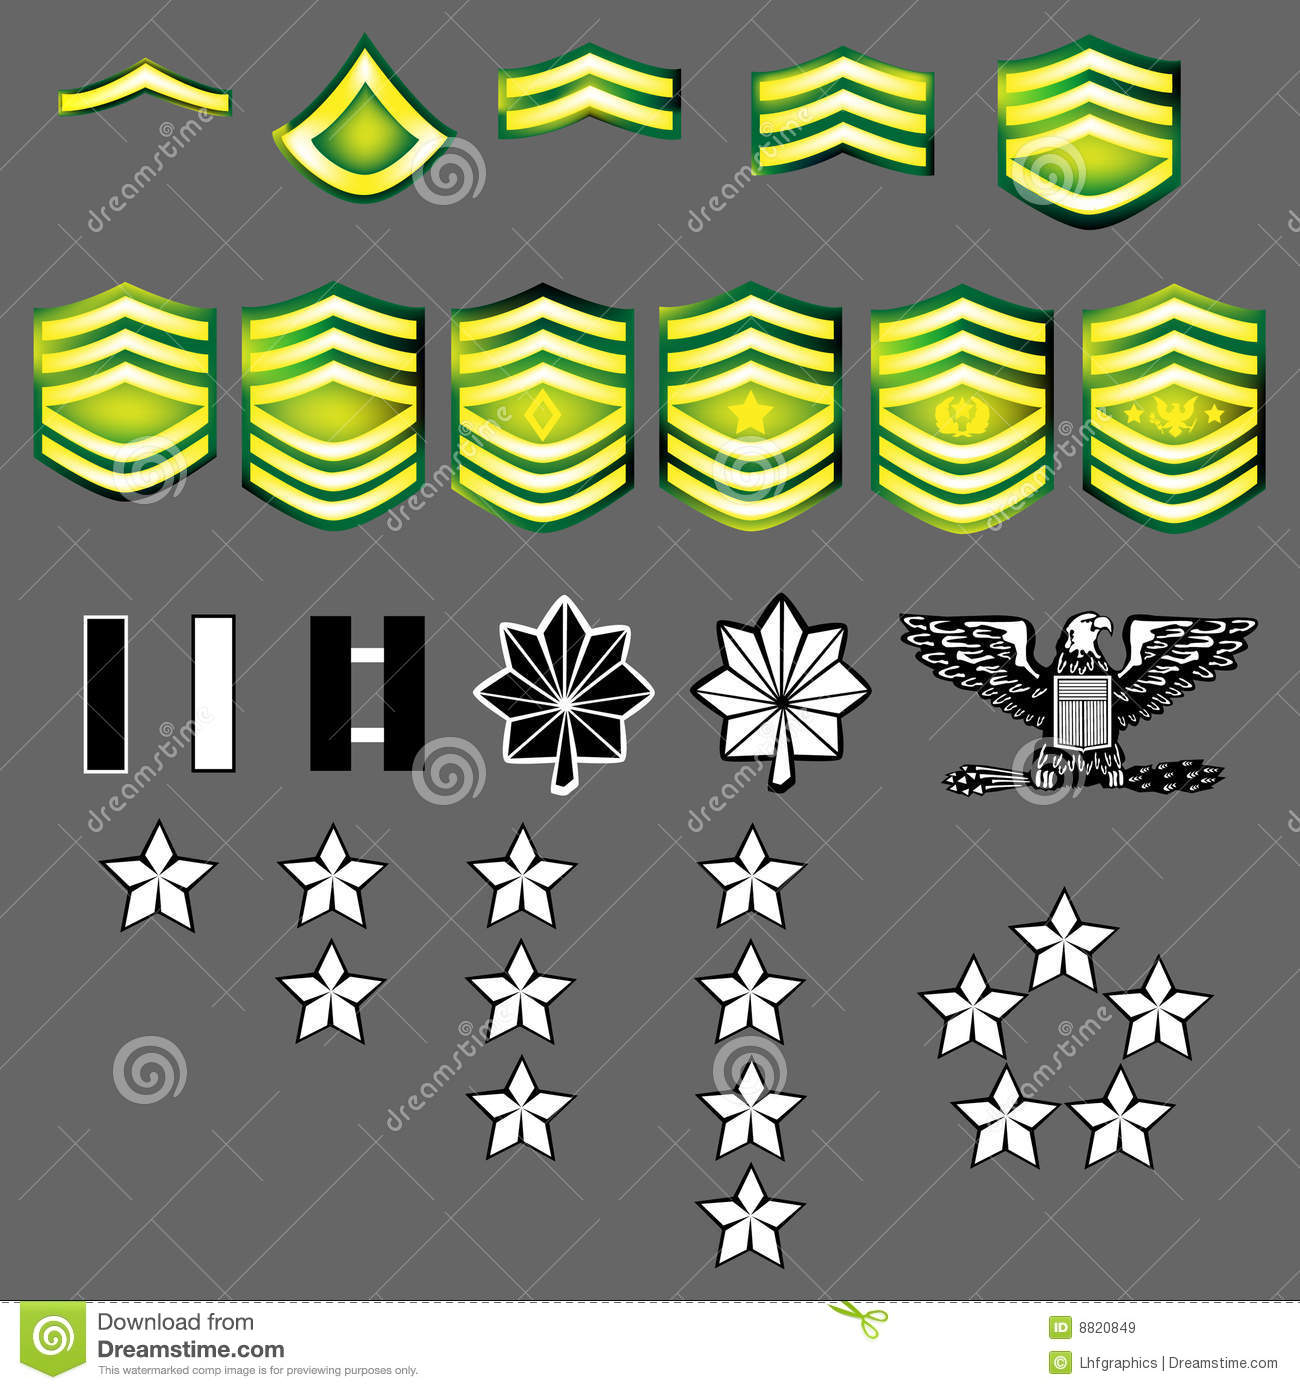 Dating us military insignia